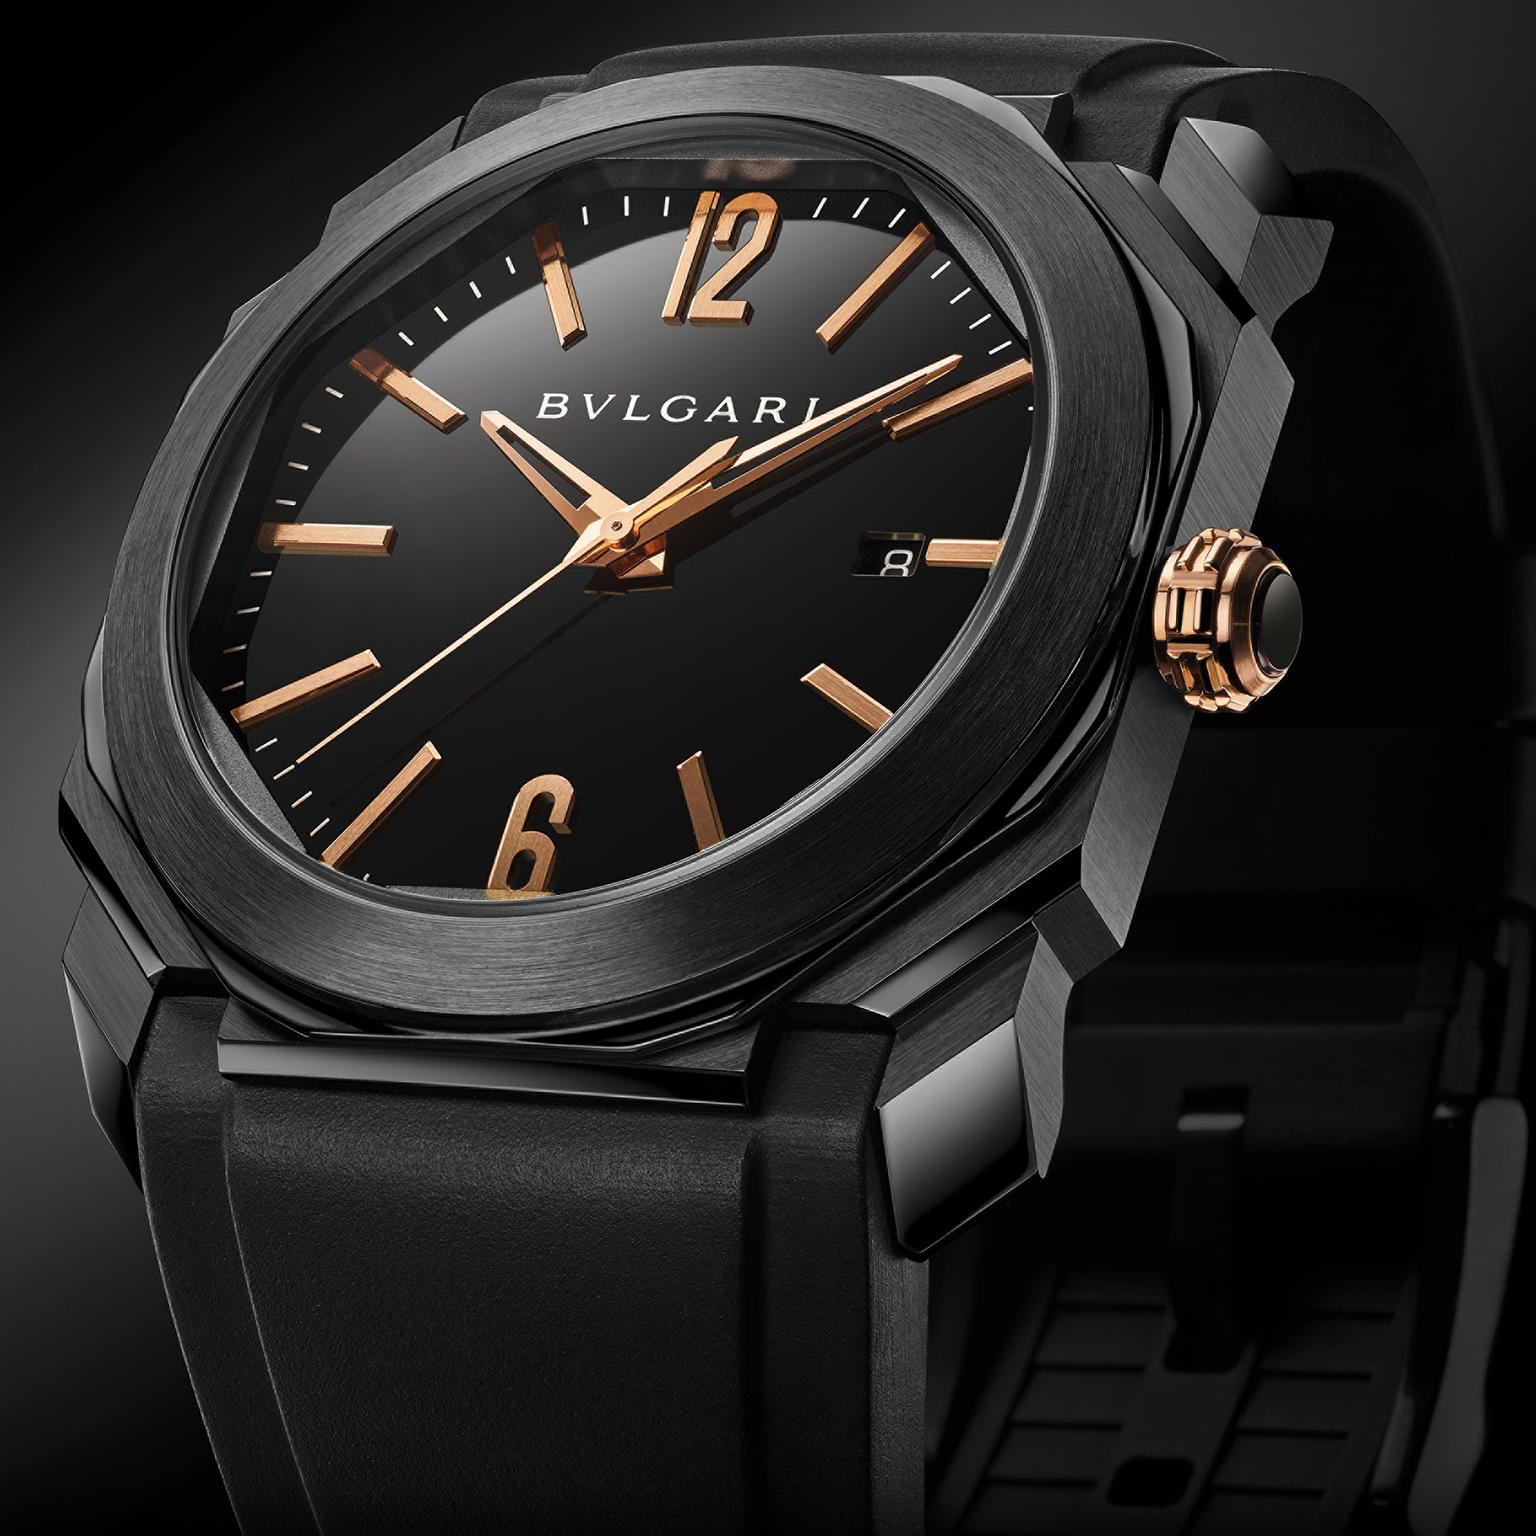 Bulgari Octo Ultranero Solotempo watch close-up